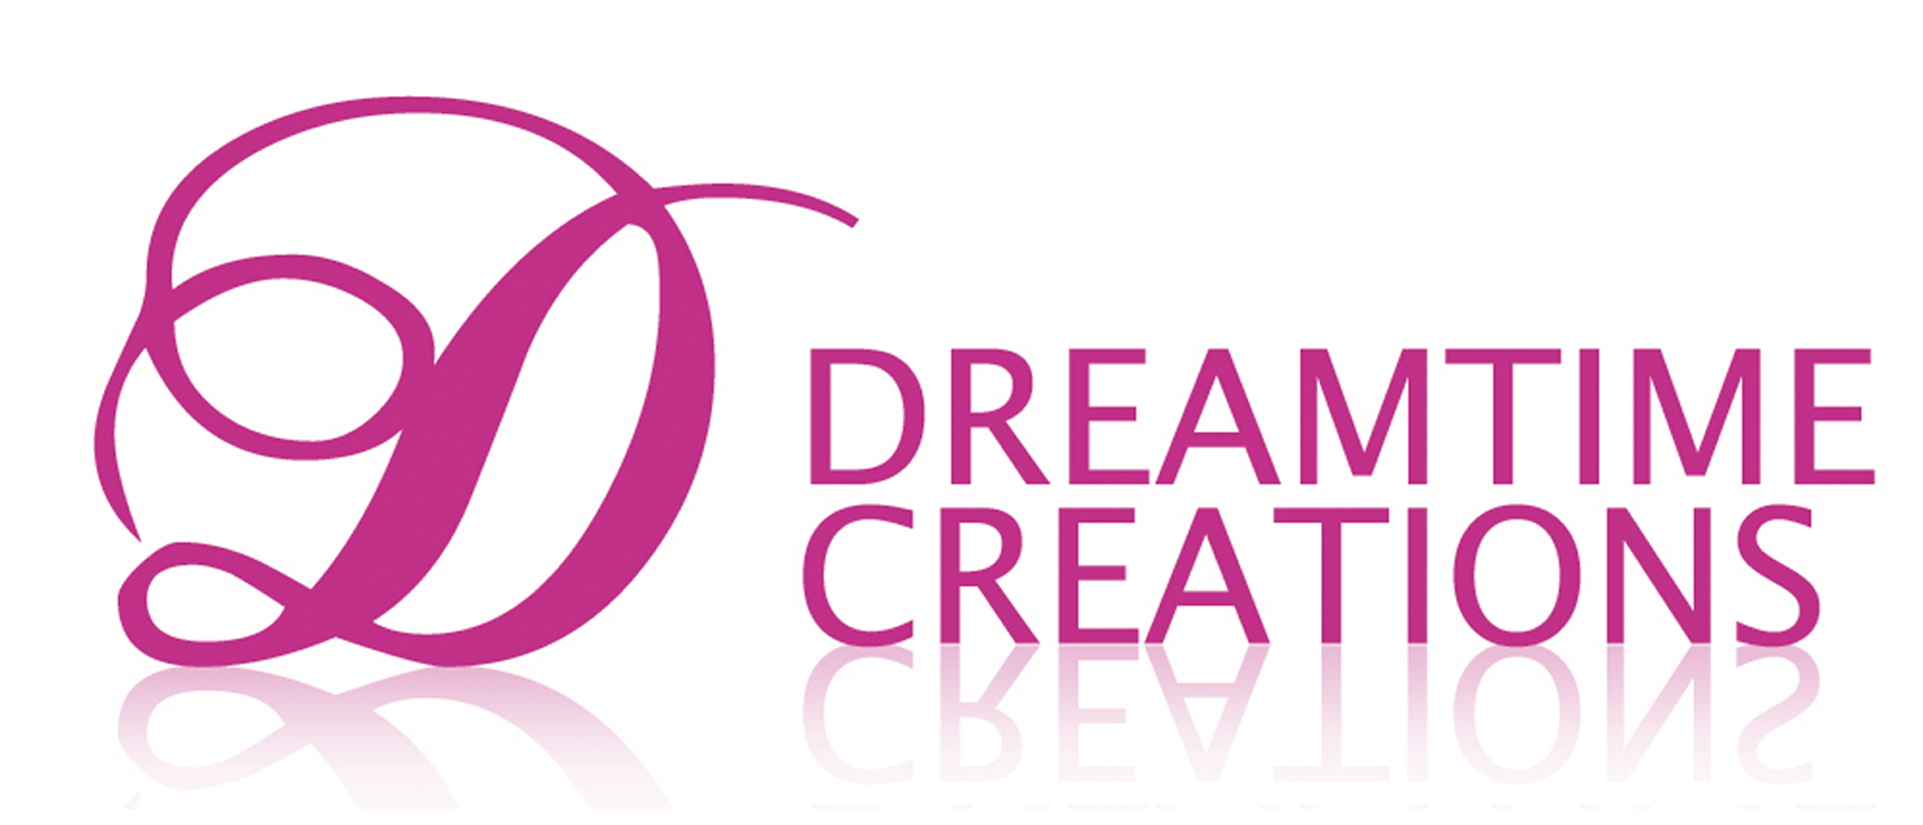 _dreamtime-creations-logo